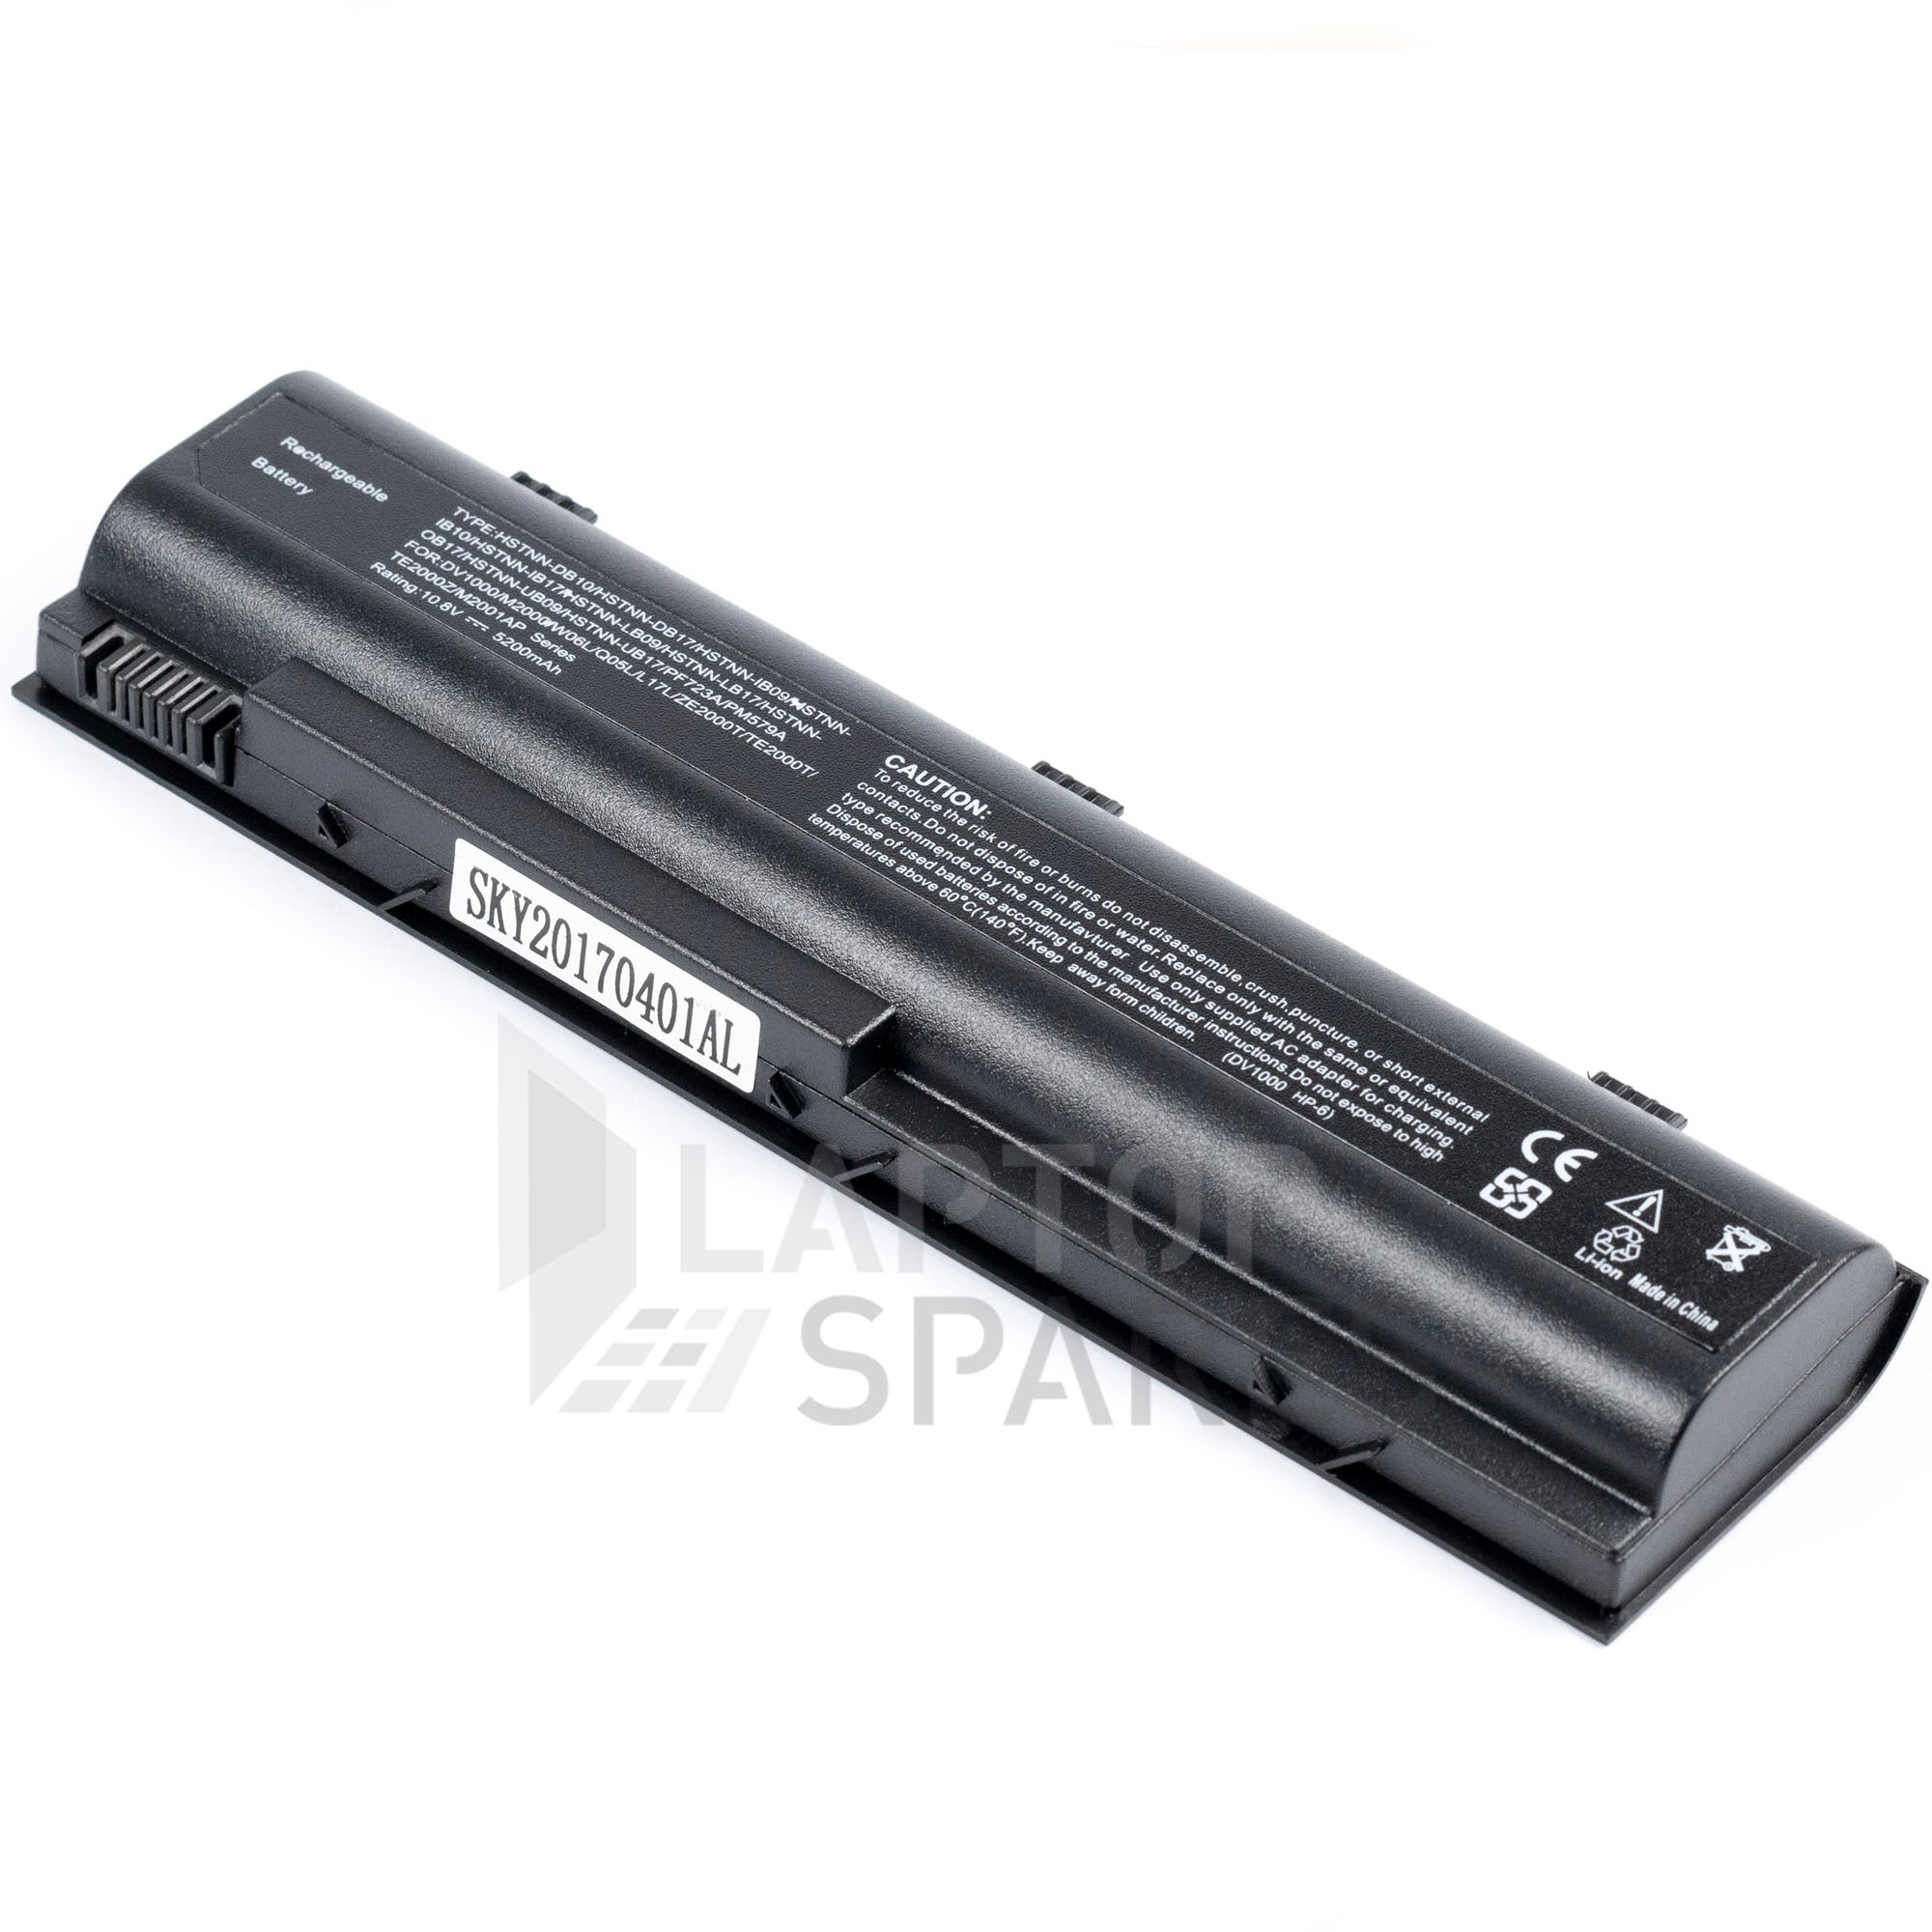 HP Pavilion DV1000 4400mAh 6 Cell Battery